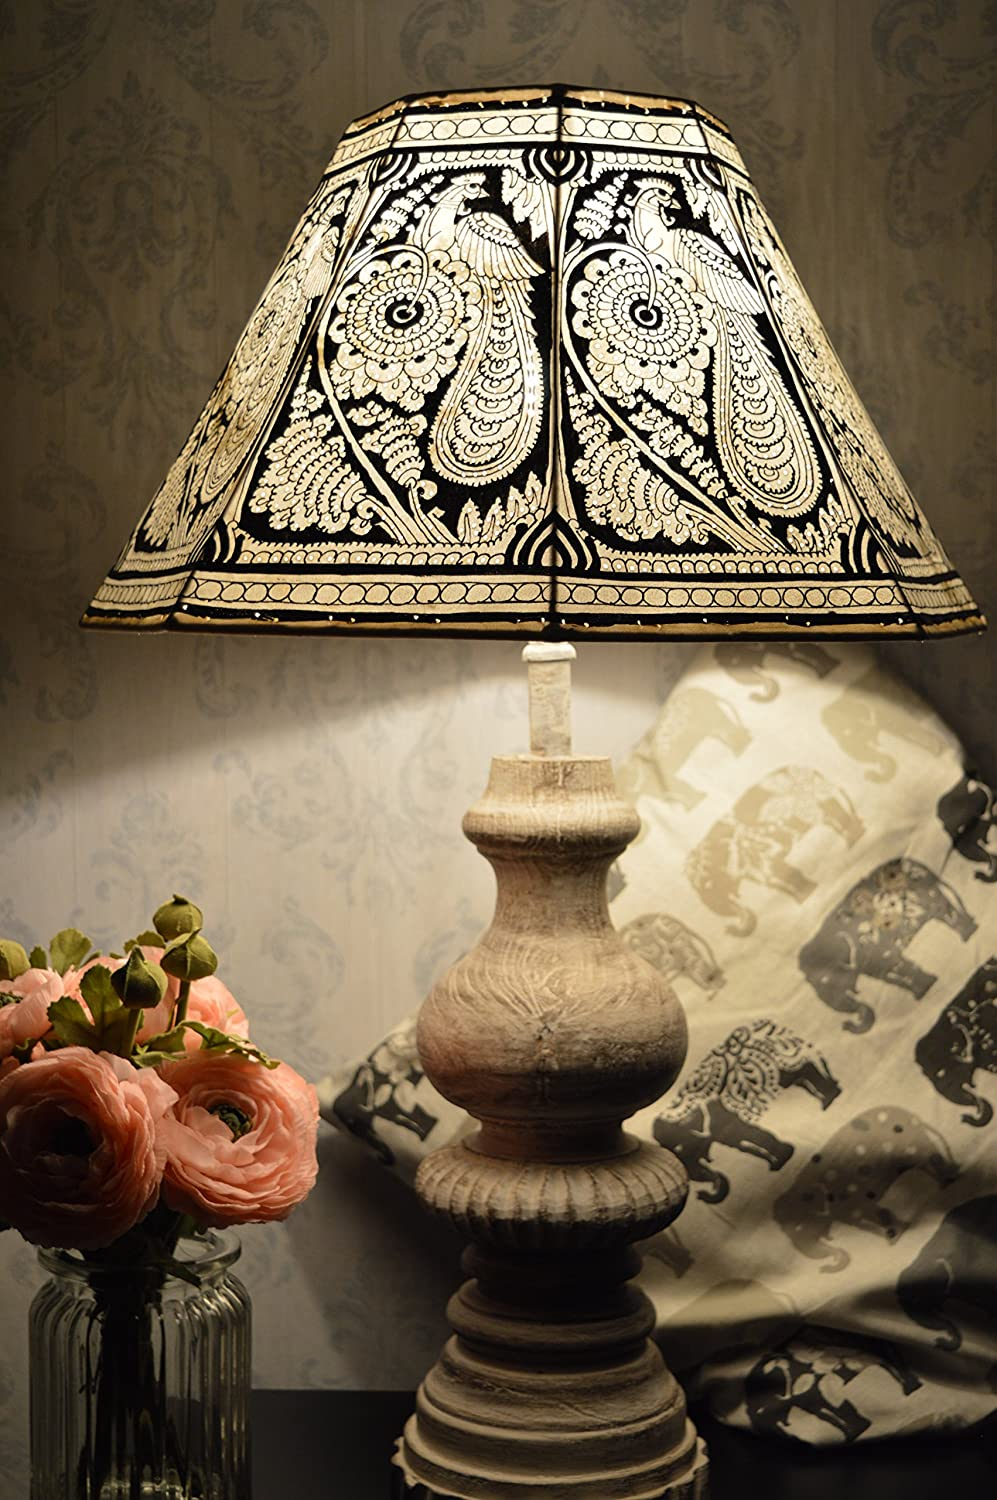 Decagonal Lampshade with 40 CM Width and 24 CM Height Leather Lamp Shade Hand Painted in Mandala Design Large Lamp shade in Vintage Style Peacock Pattern